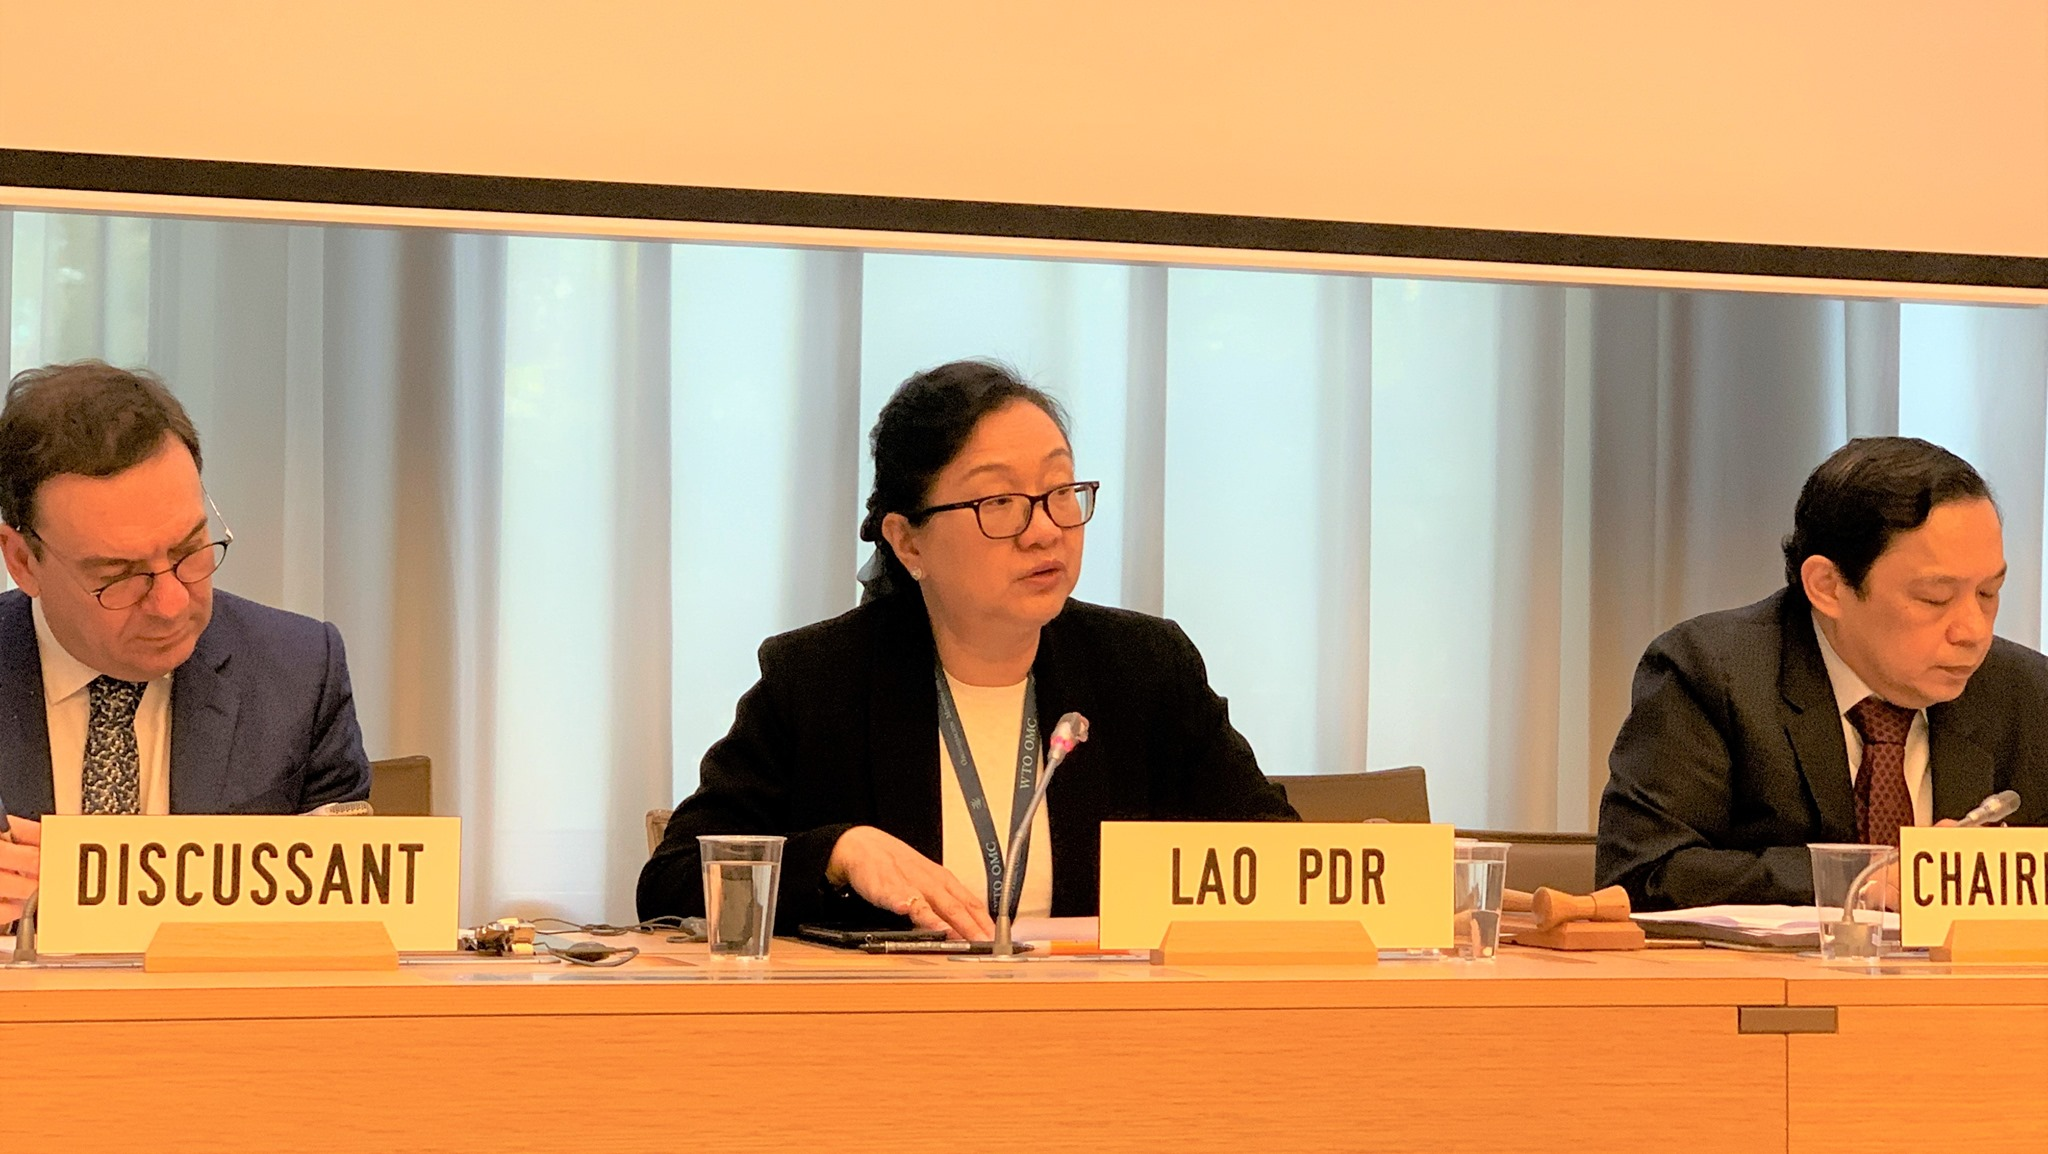 The opening statement delivered by H.E. Mrs. Khemmani Pholsena, Minister of Industry and Commerce of Lao PDR. On her right: H.E. Mr. Jean-Marie Paugman, Permanent Representative of France to the WTO, the Discussant. On her left: H.E. Mr. Manuel A.J. Teehankee, Ambassador, Permanent Representative of Philippines to the WTO, the Chairperson.